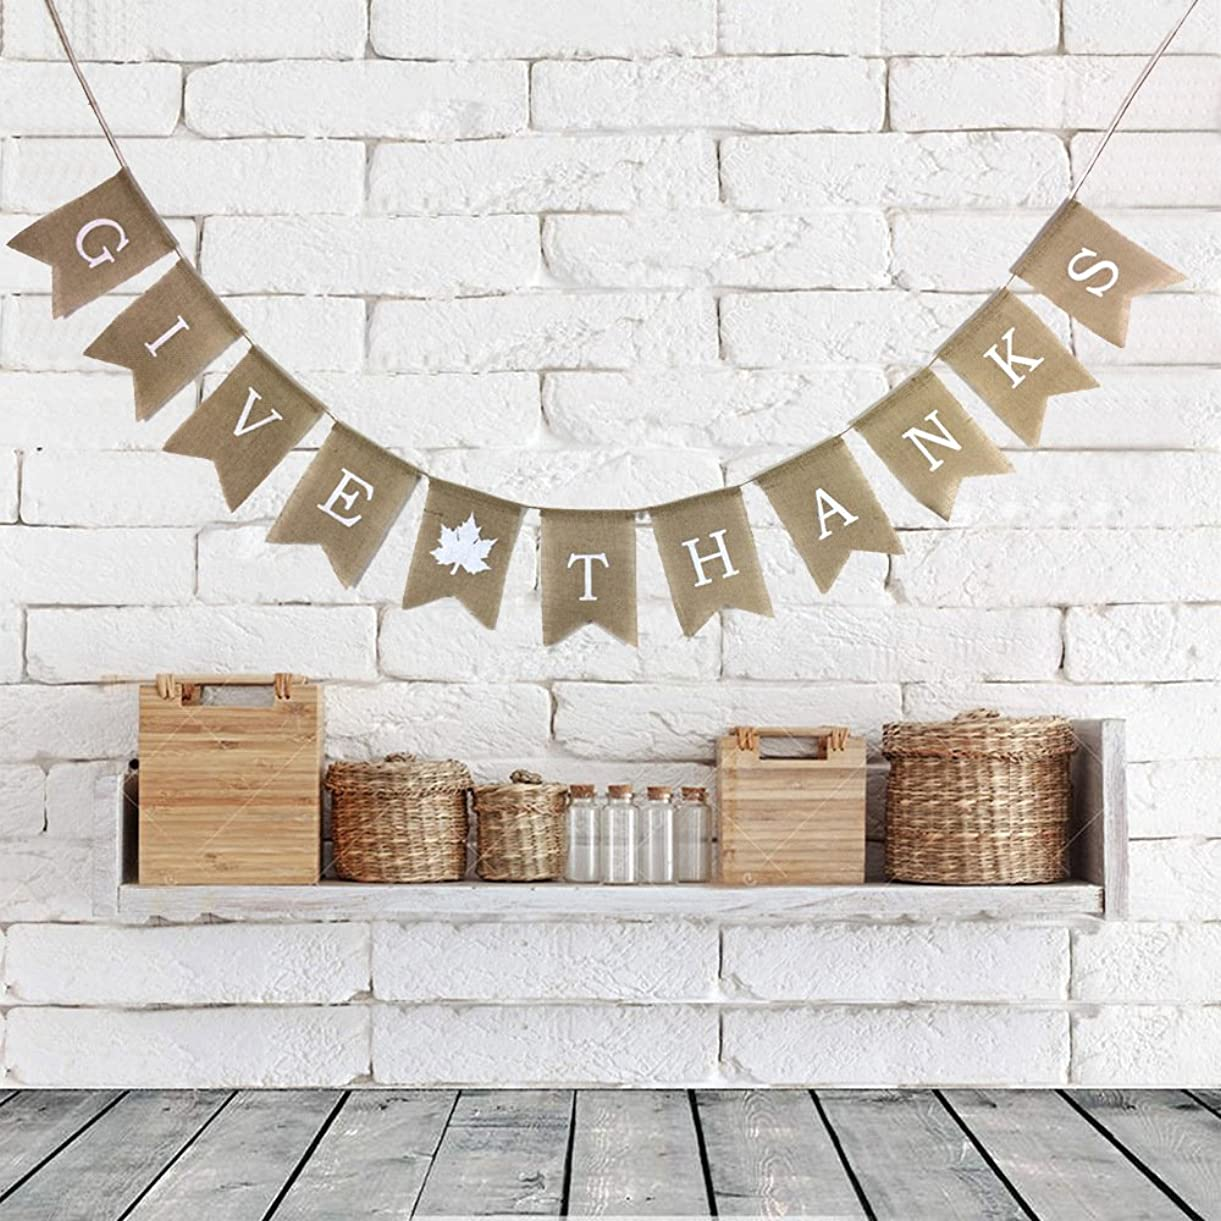 Rainlemon Give Thanks Burlap Garland Bunting Banner Happy Thanksgiving Day Party Home Decoration bmuco8555